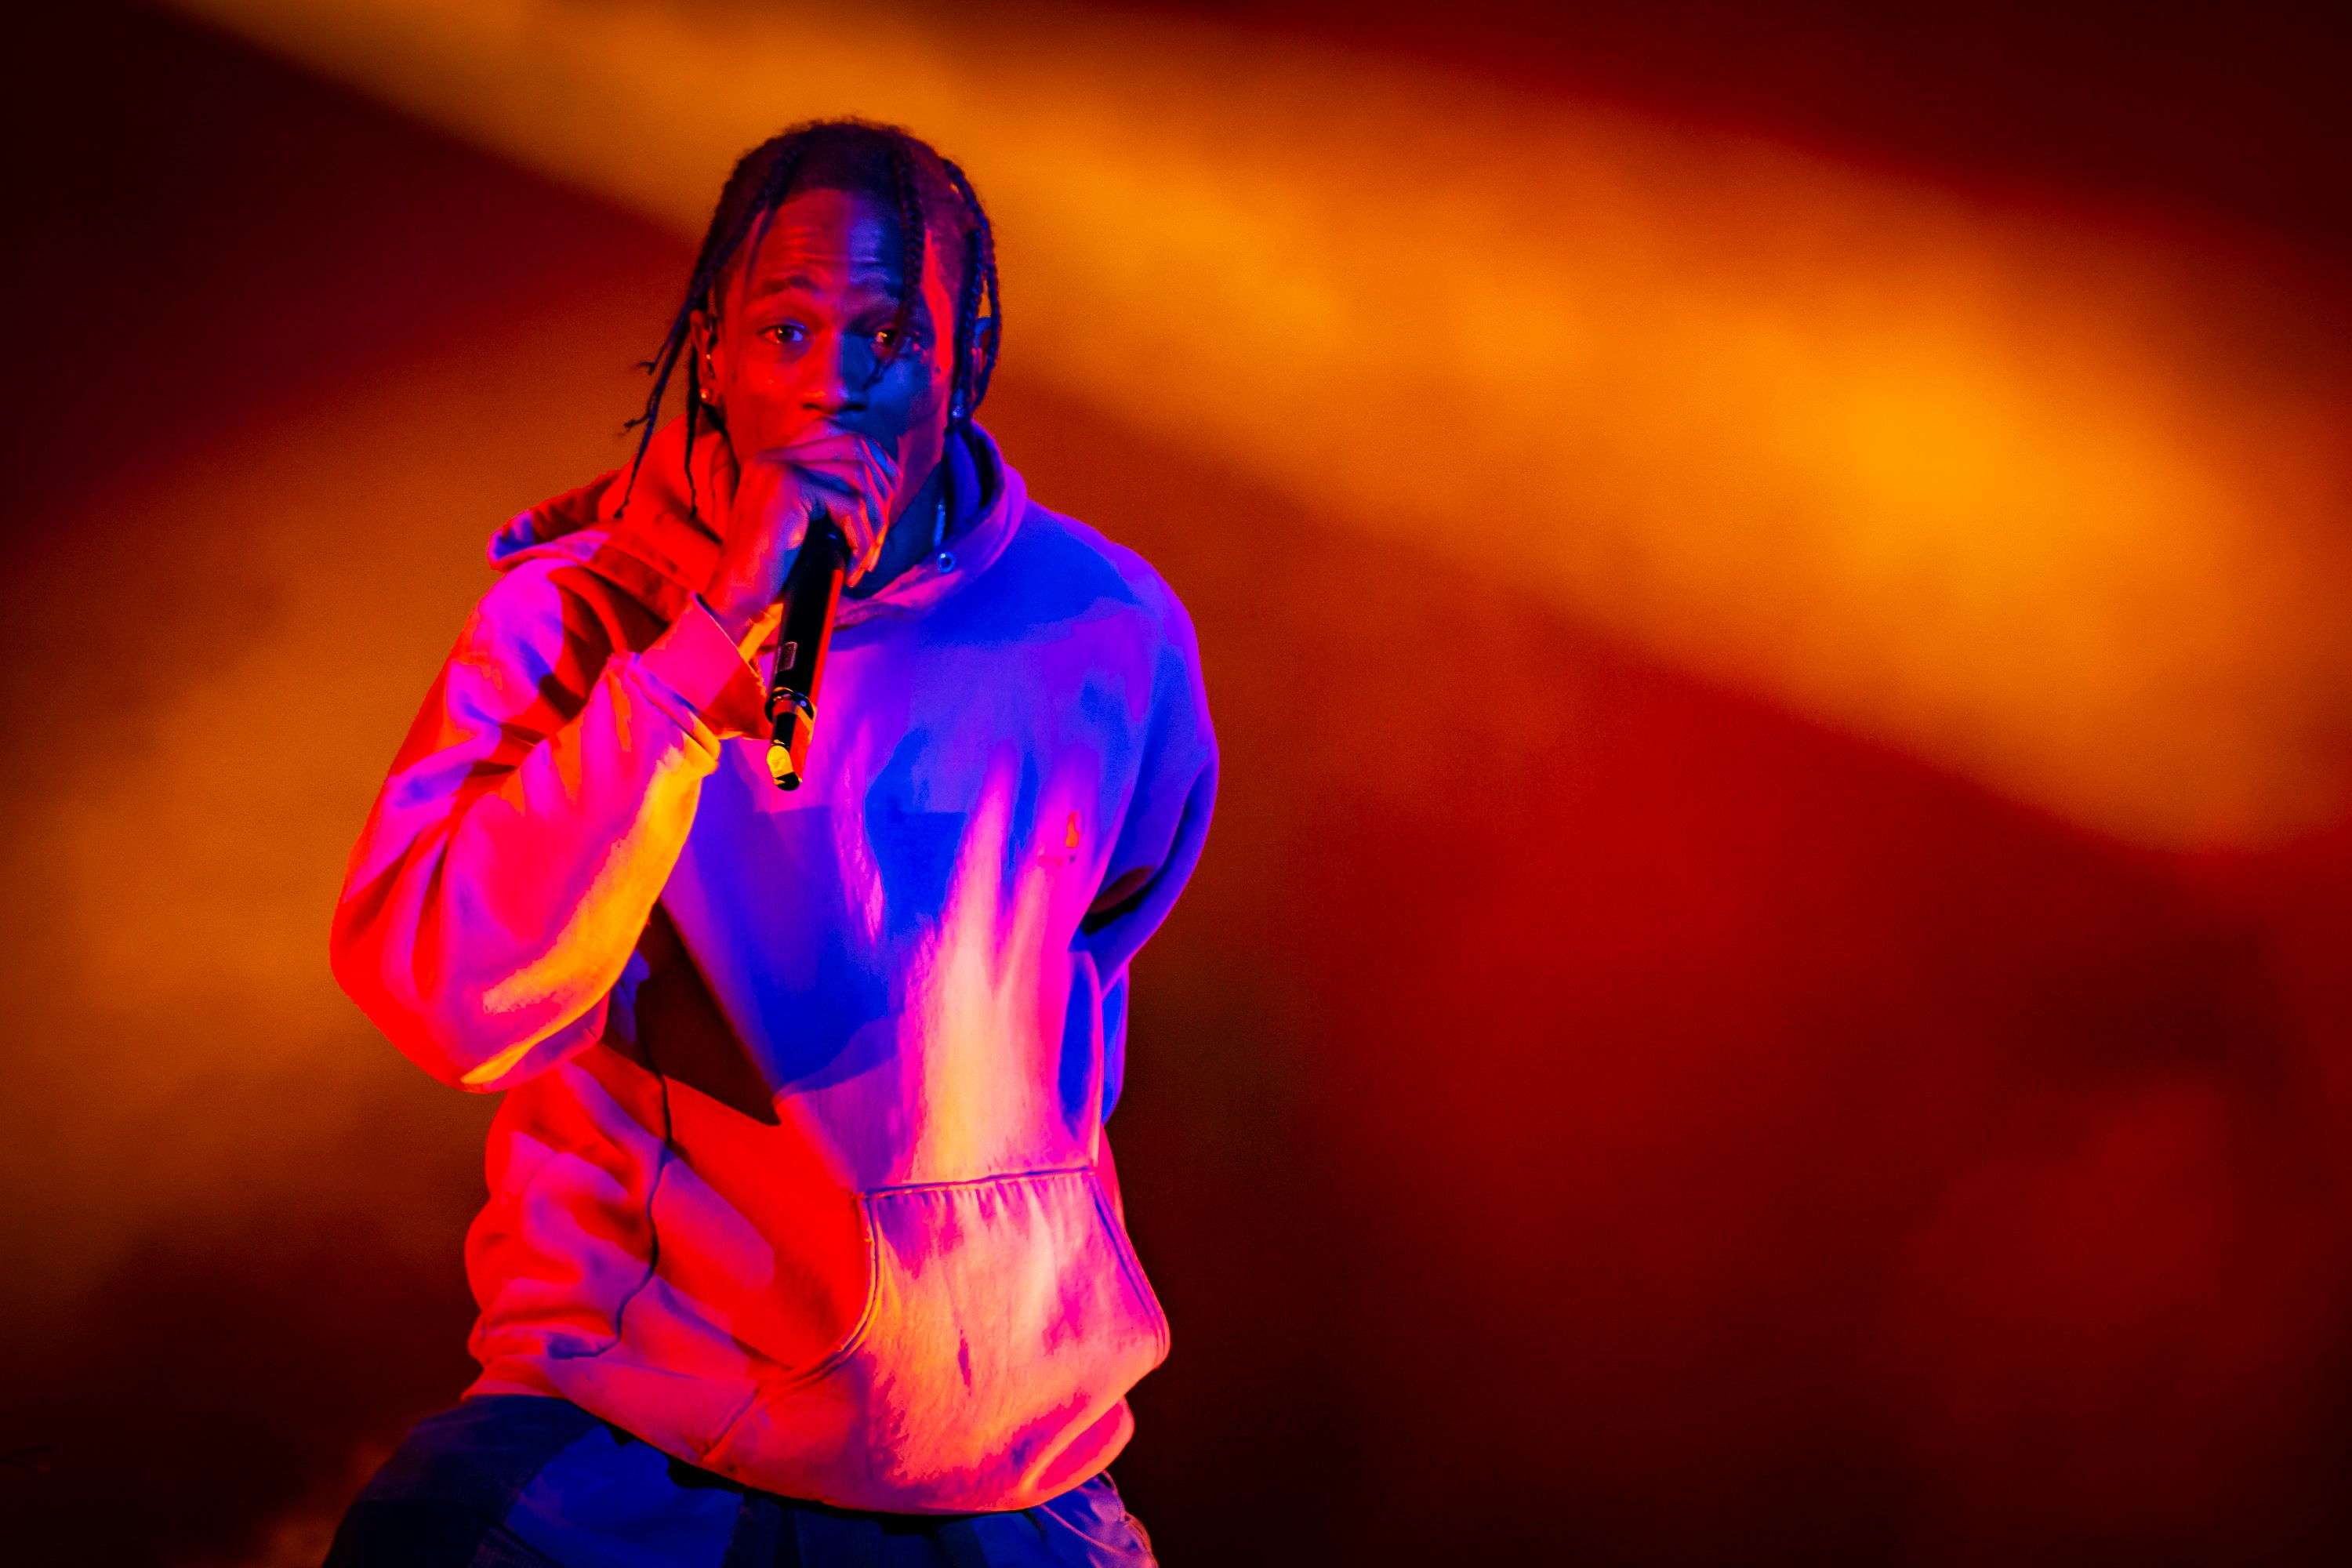 MONTREAL, QC - AUGUST 03:  Travis Scott performs at the Osheaga Music and Art Festival at Parc Jean-Drapeau on August 3, 2018 in Montreal, Canada.  (Photo by Mark Horton/Getty Images)